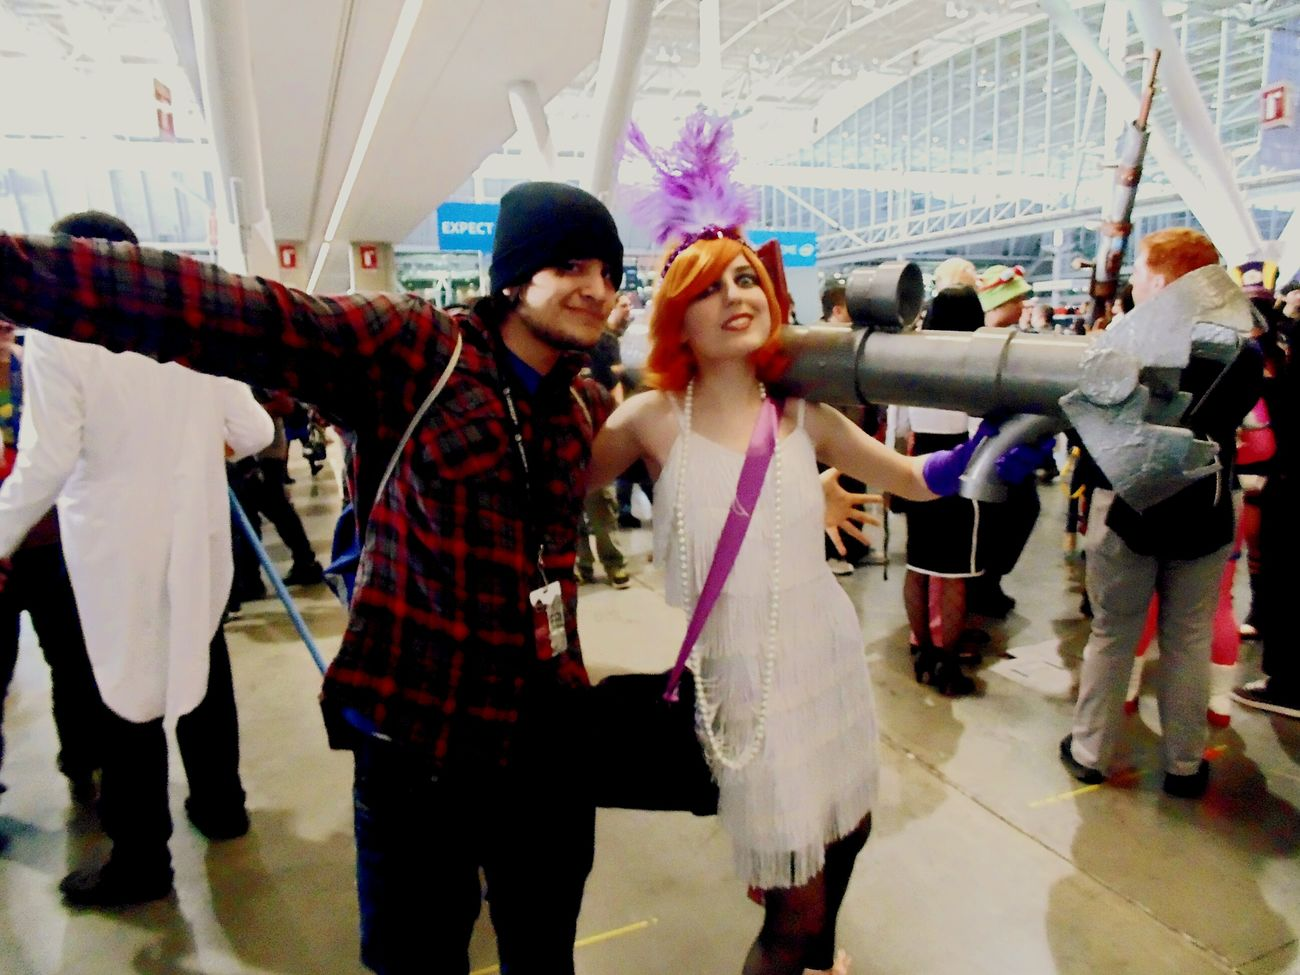 LeagueofLegends League Of Legends Gaming Pax Paxeast2015 Pax East